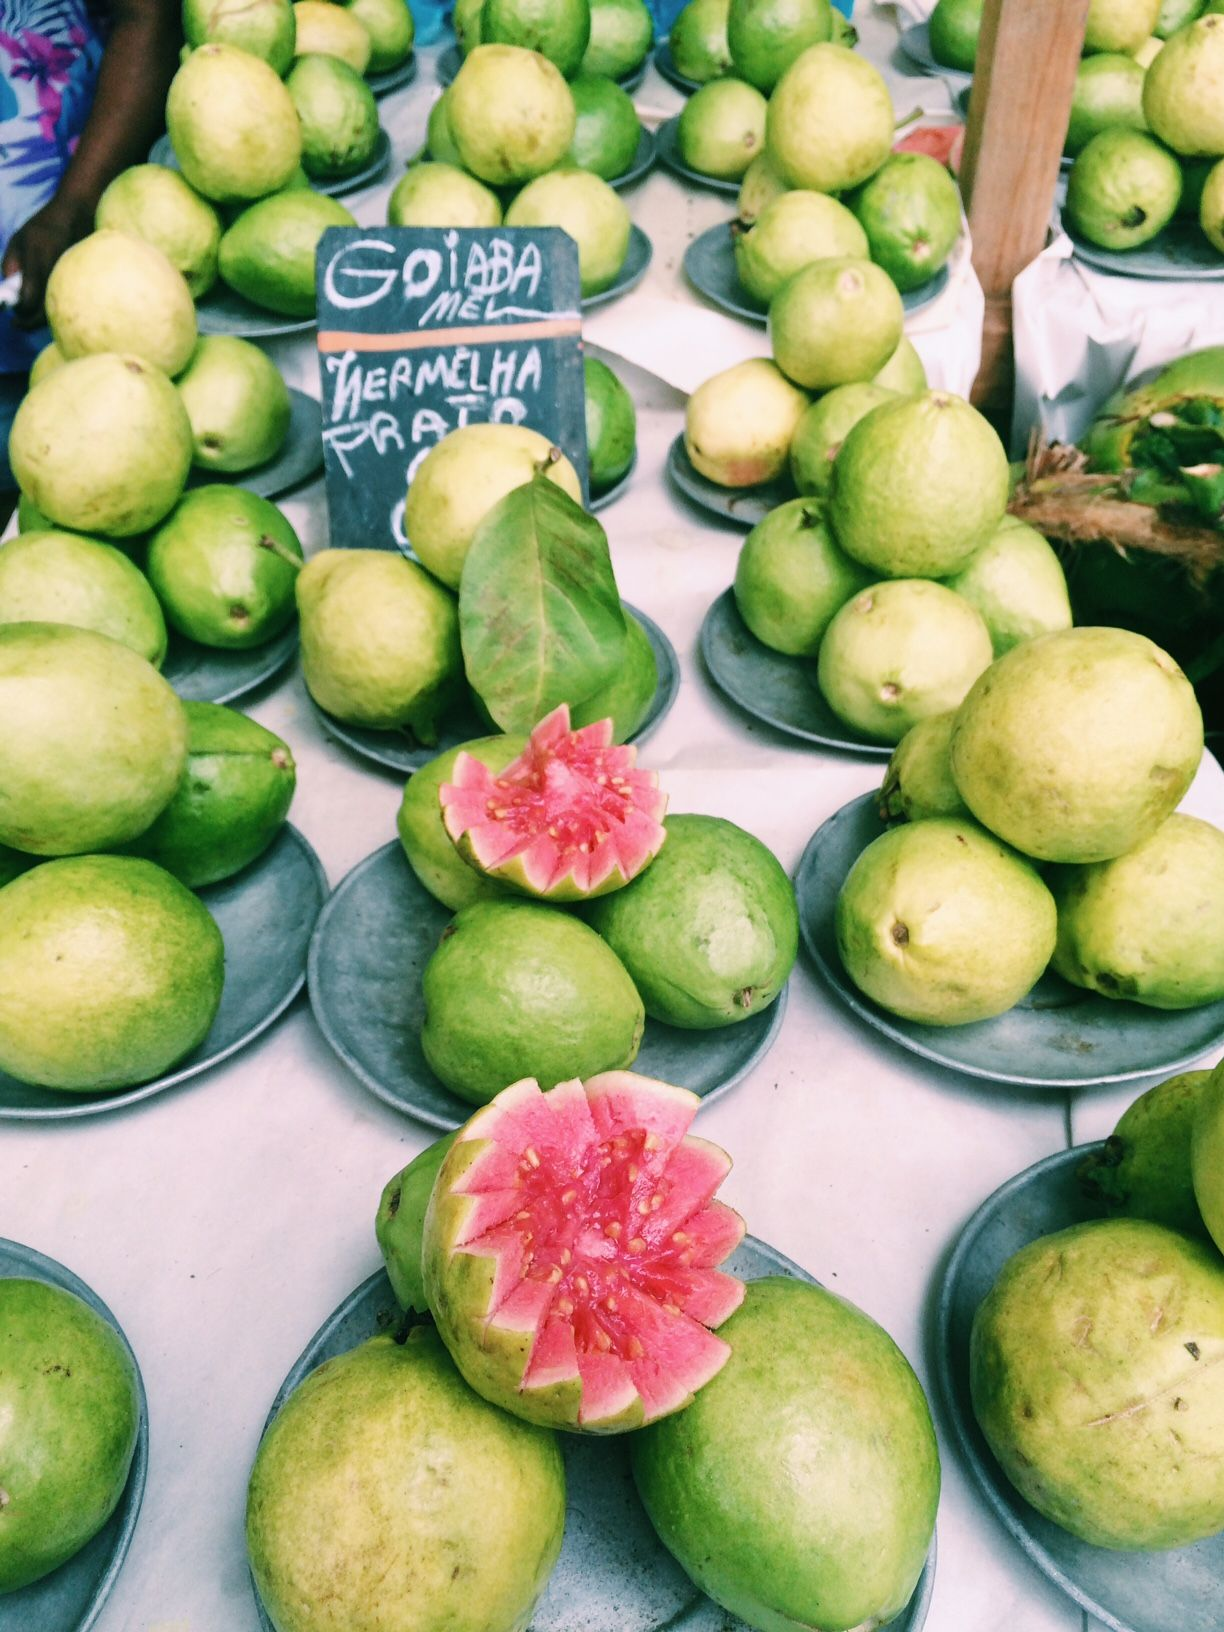 Sampling different types of tropical fruits at a farmers market sampling different types of tropical fruits at a farmers market type fair like fresh guava in ccuart Image collections